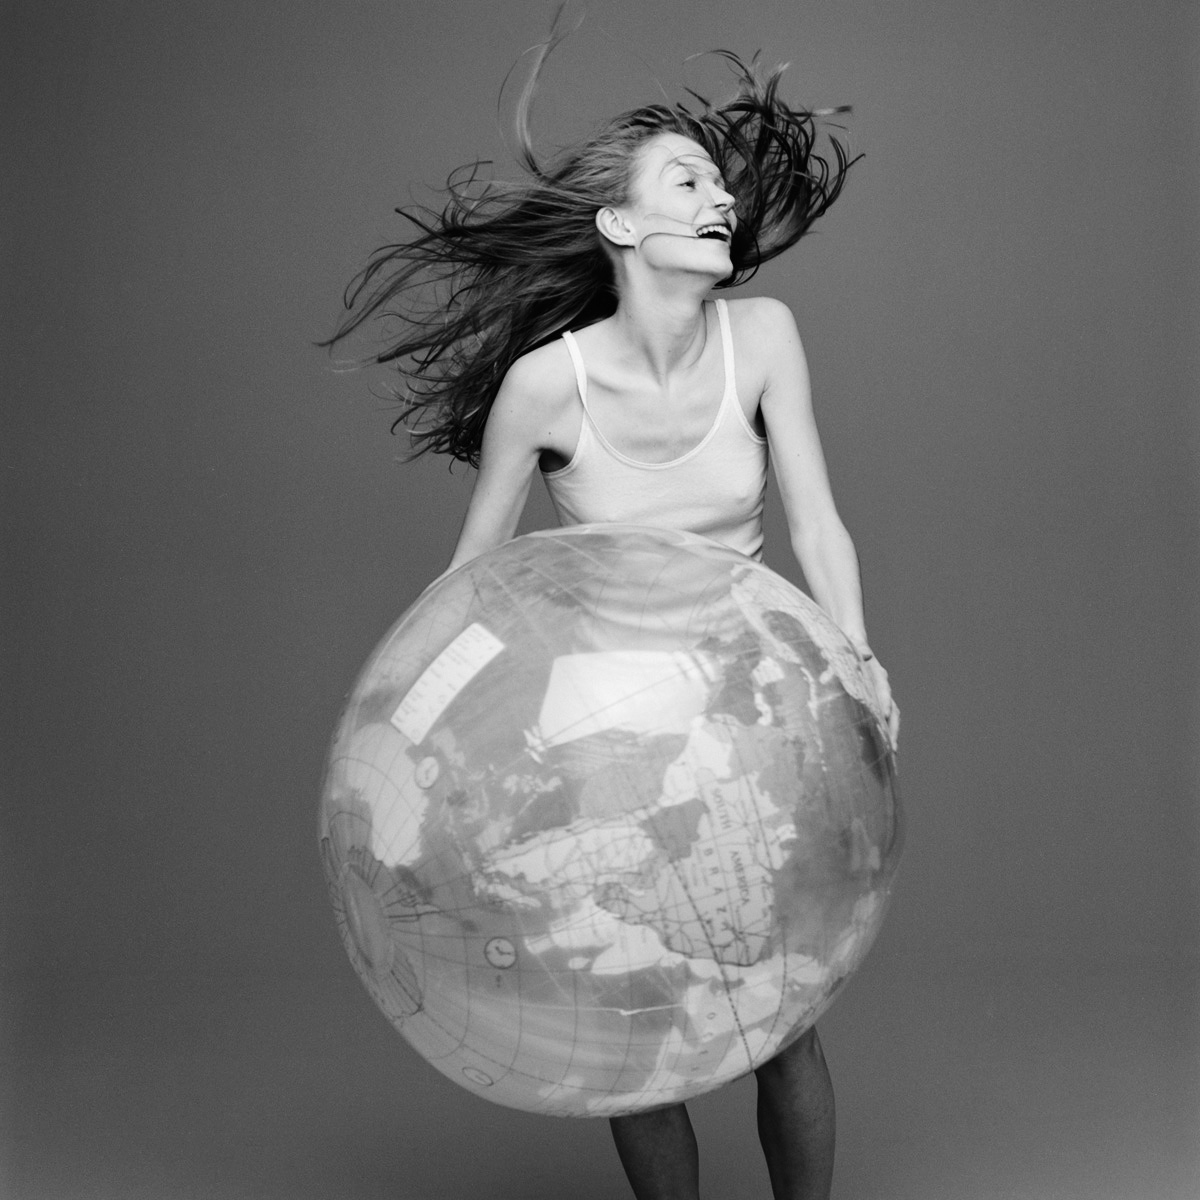 kate+moss+with+the+world+by+patrik+andersson-4.jpeg